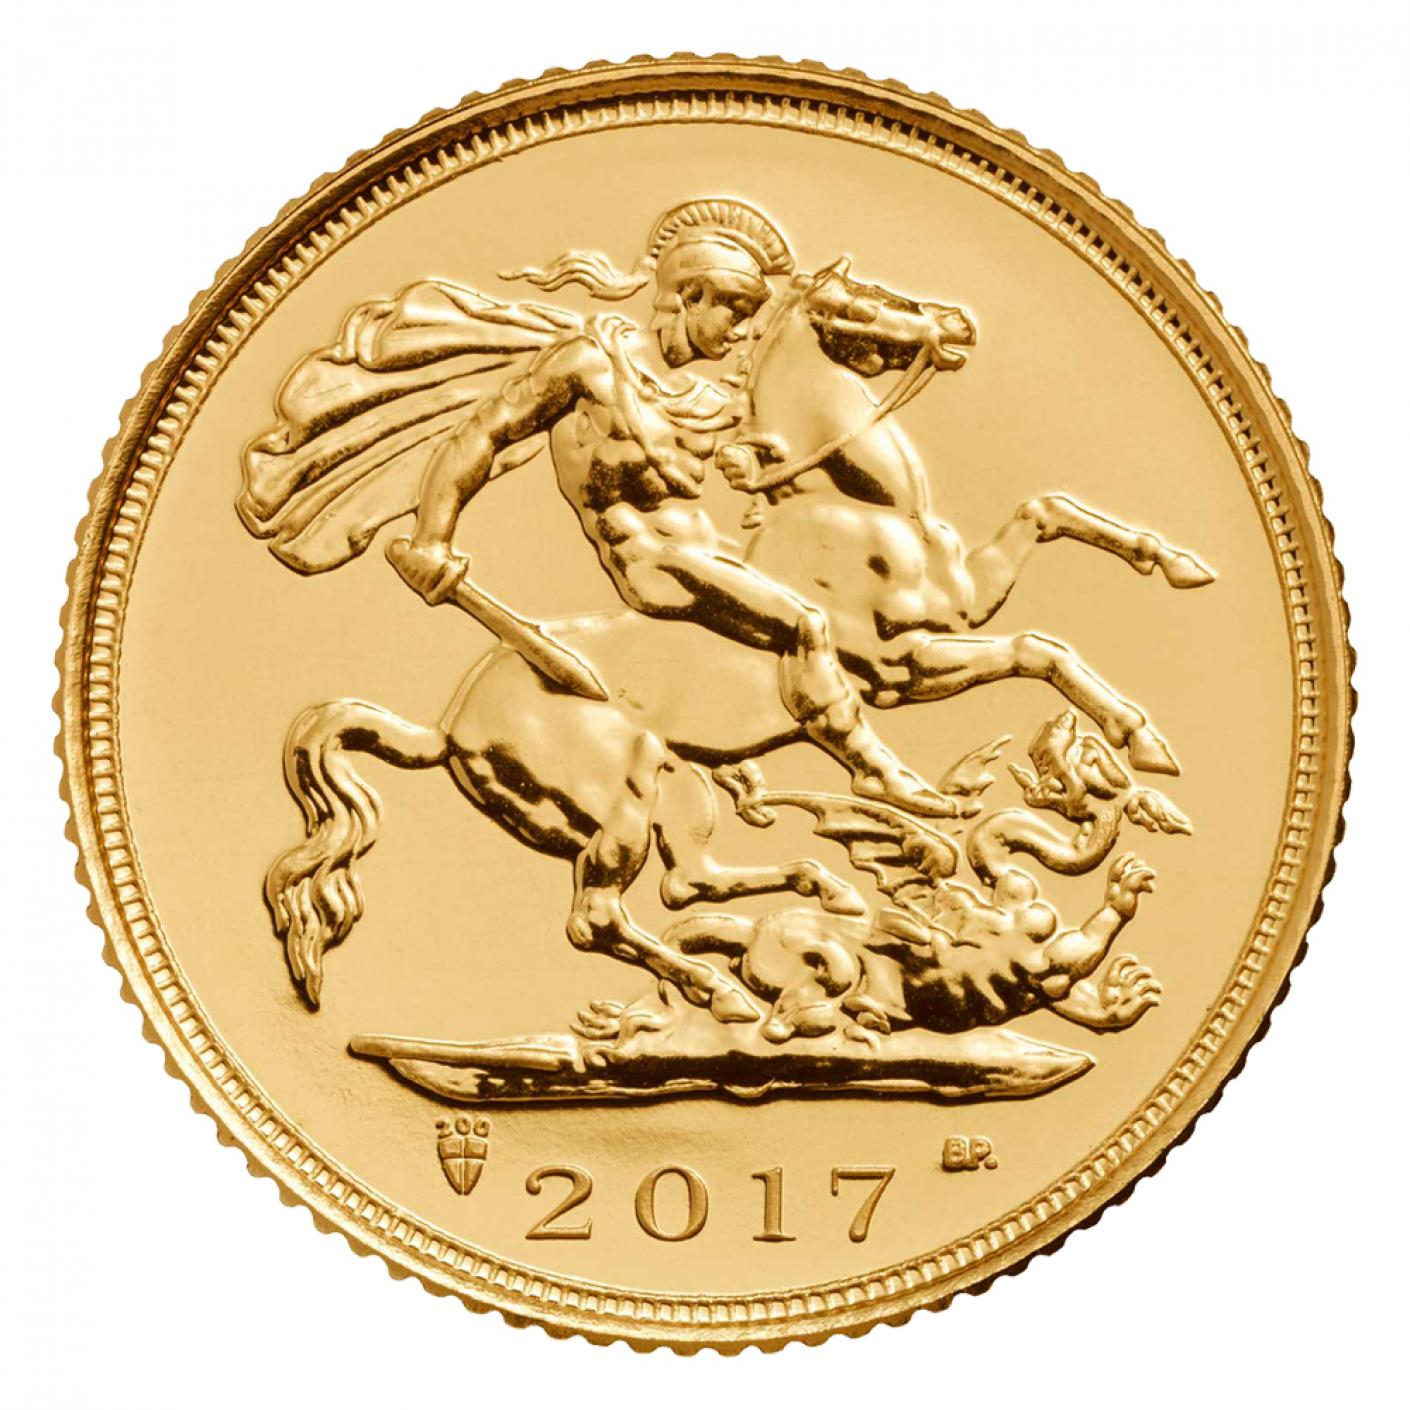 Other British Royal Mint Gold Coins